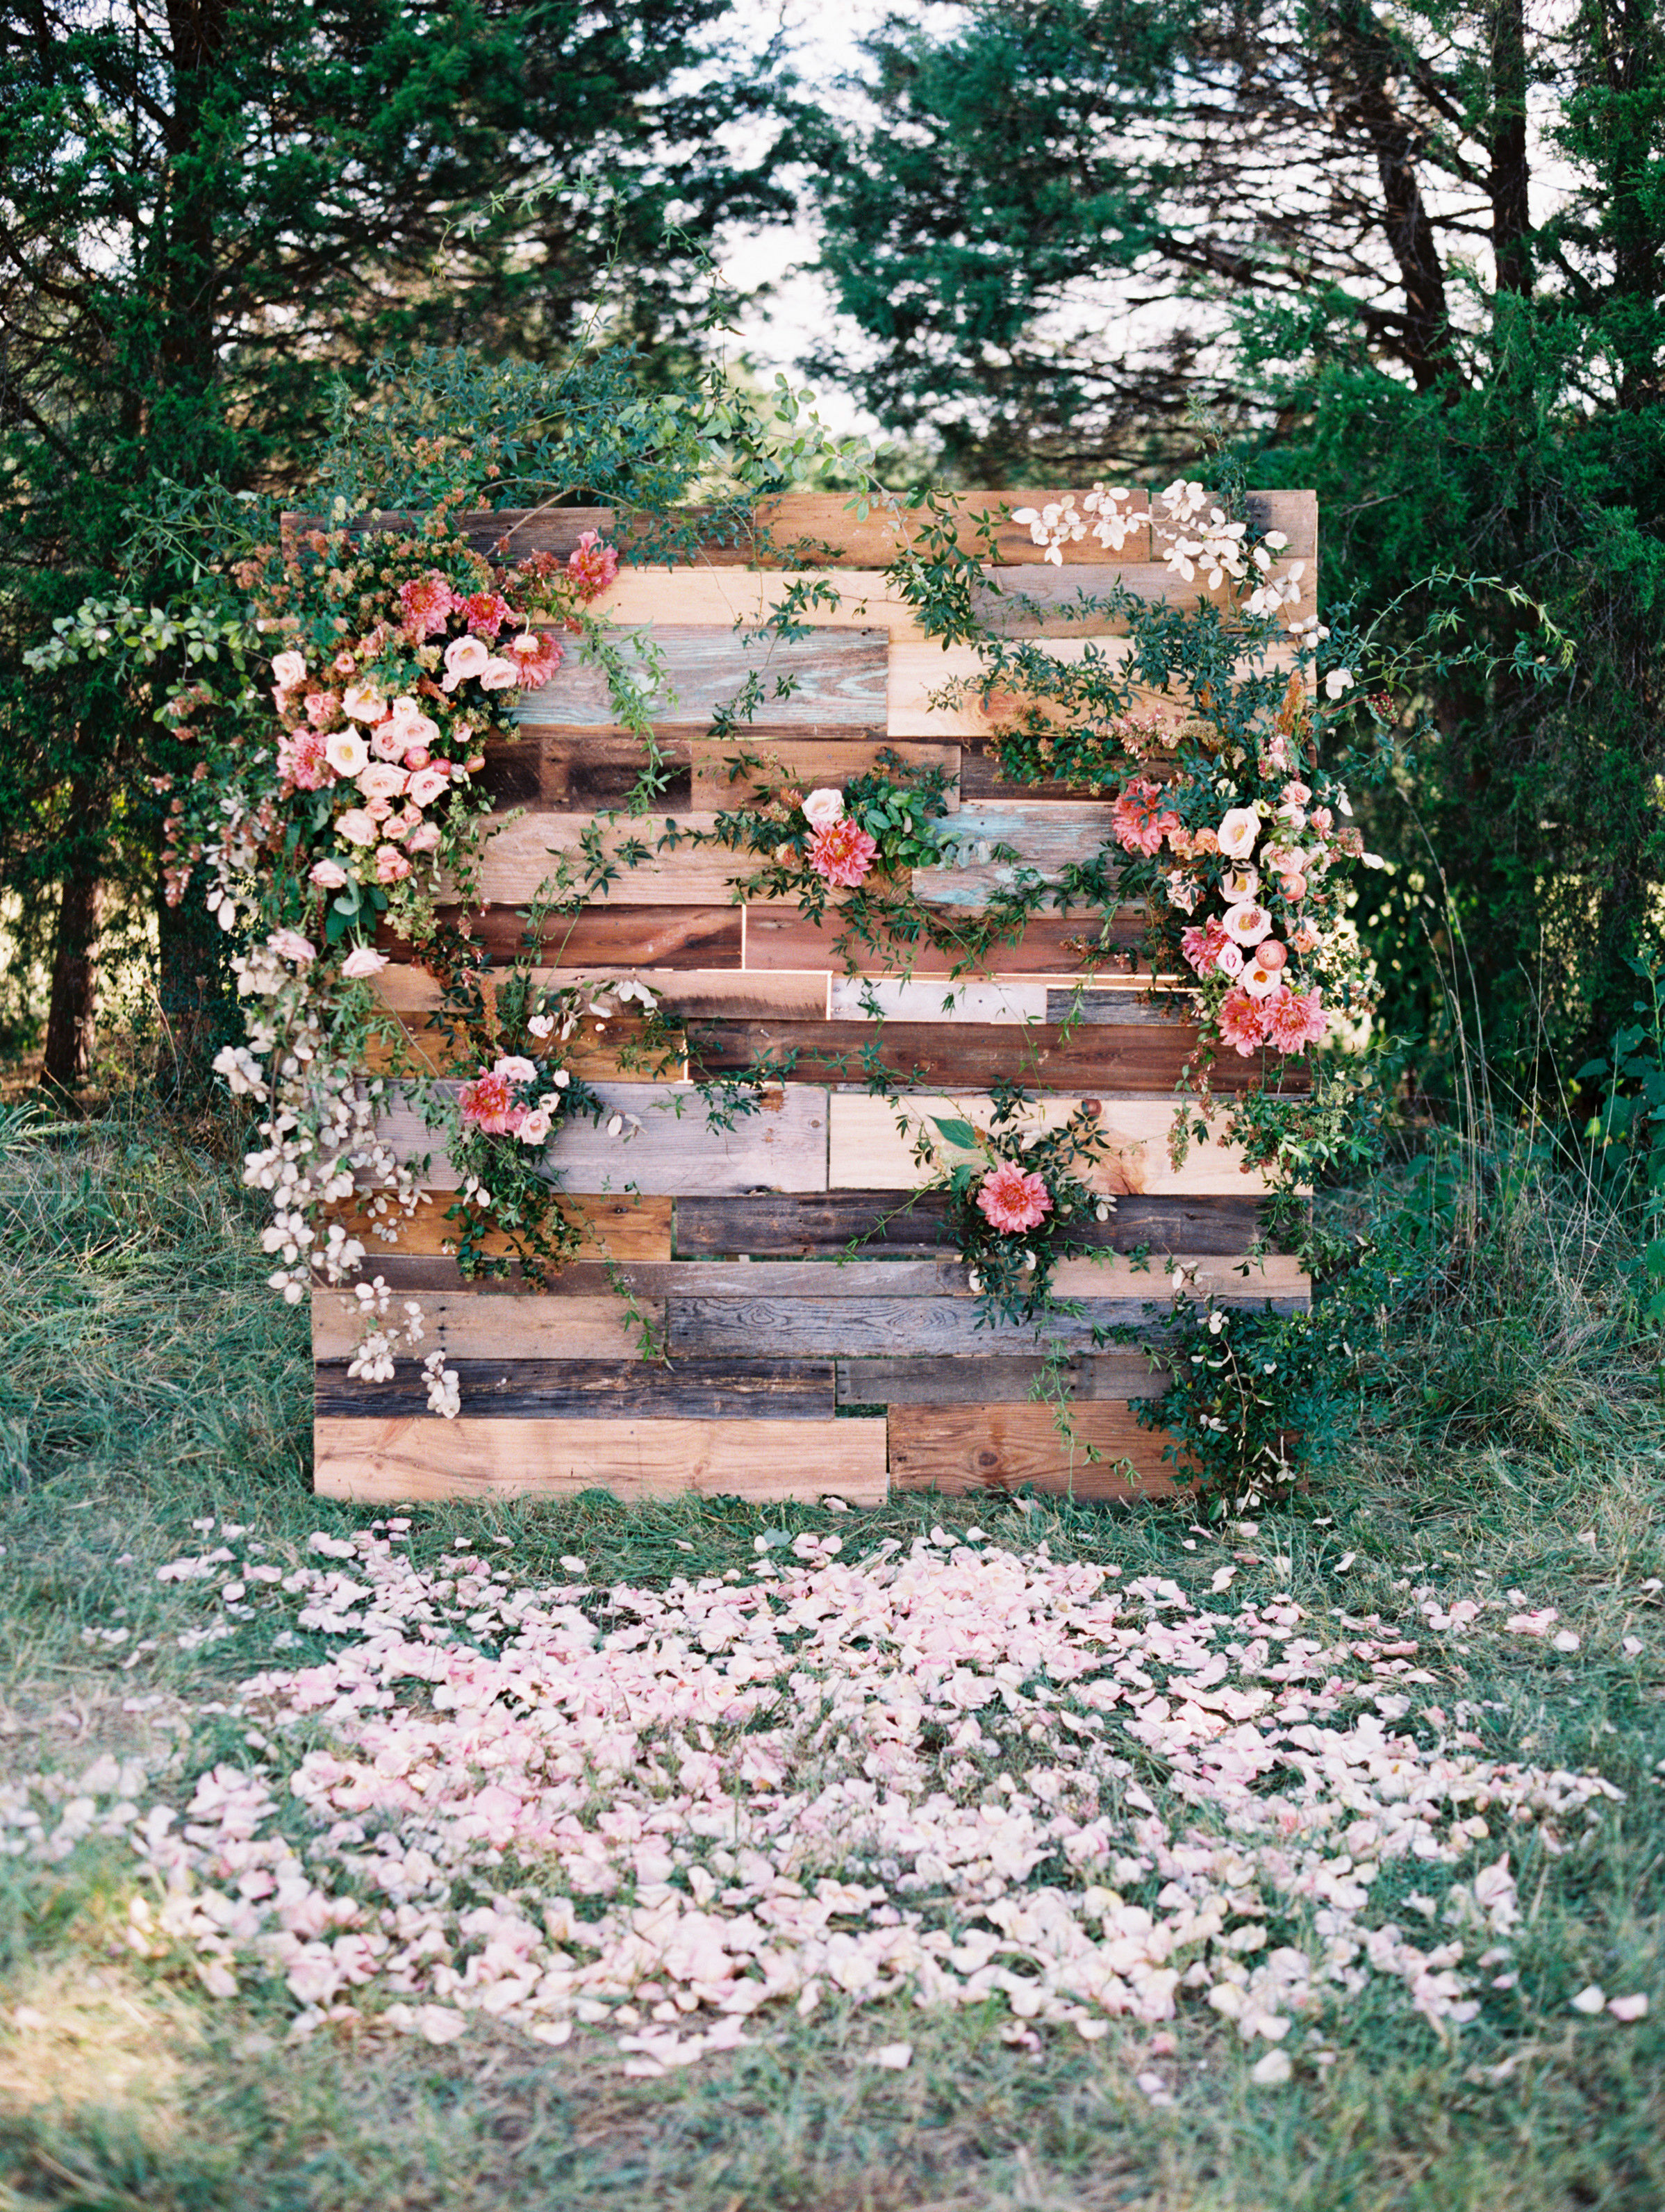 wedding backdrop free standing wood pallet pink blooms greenery